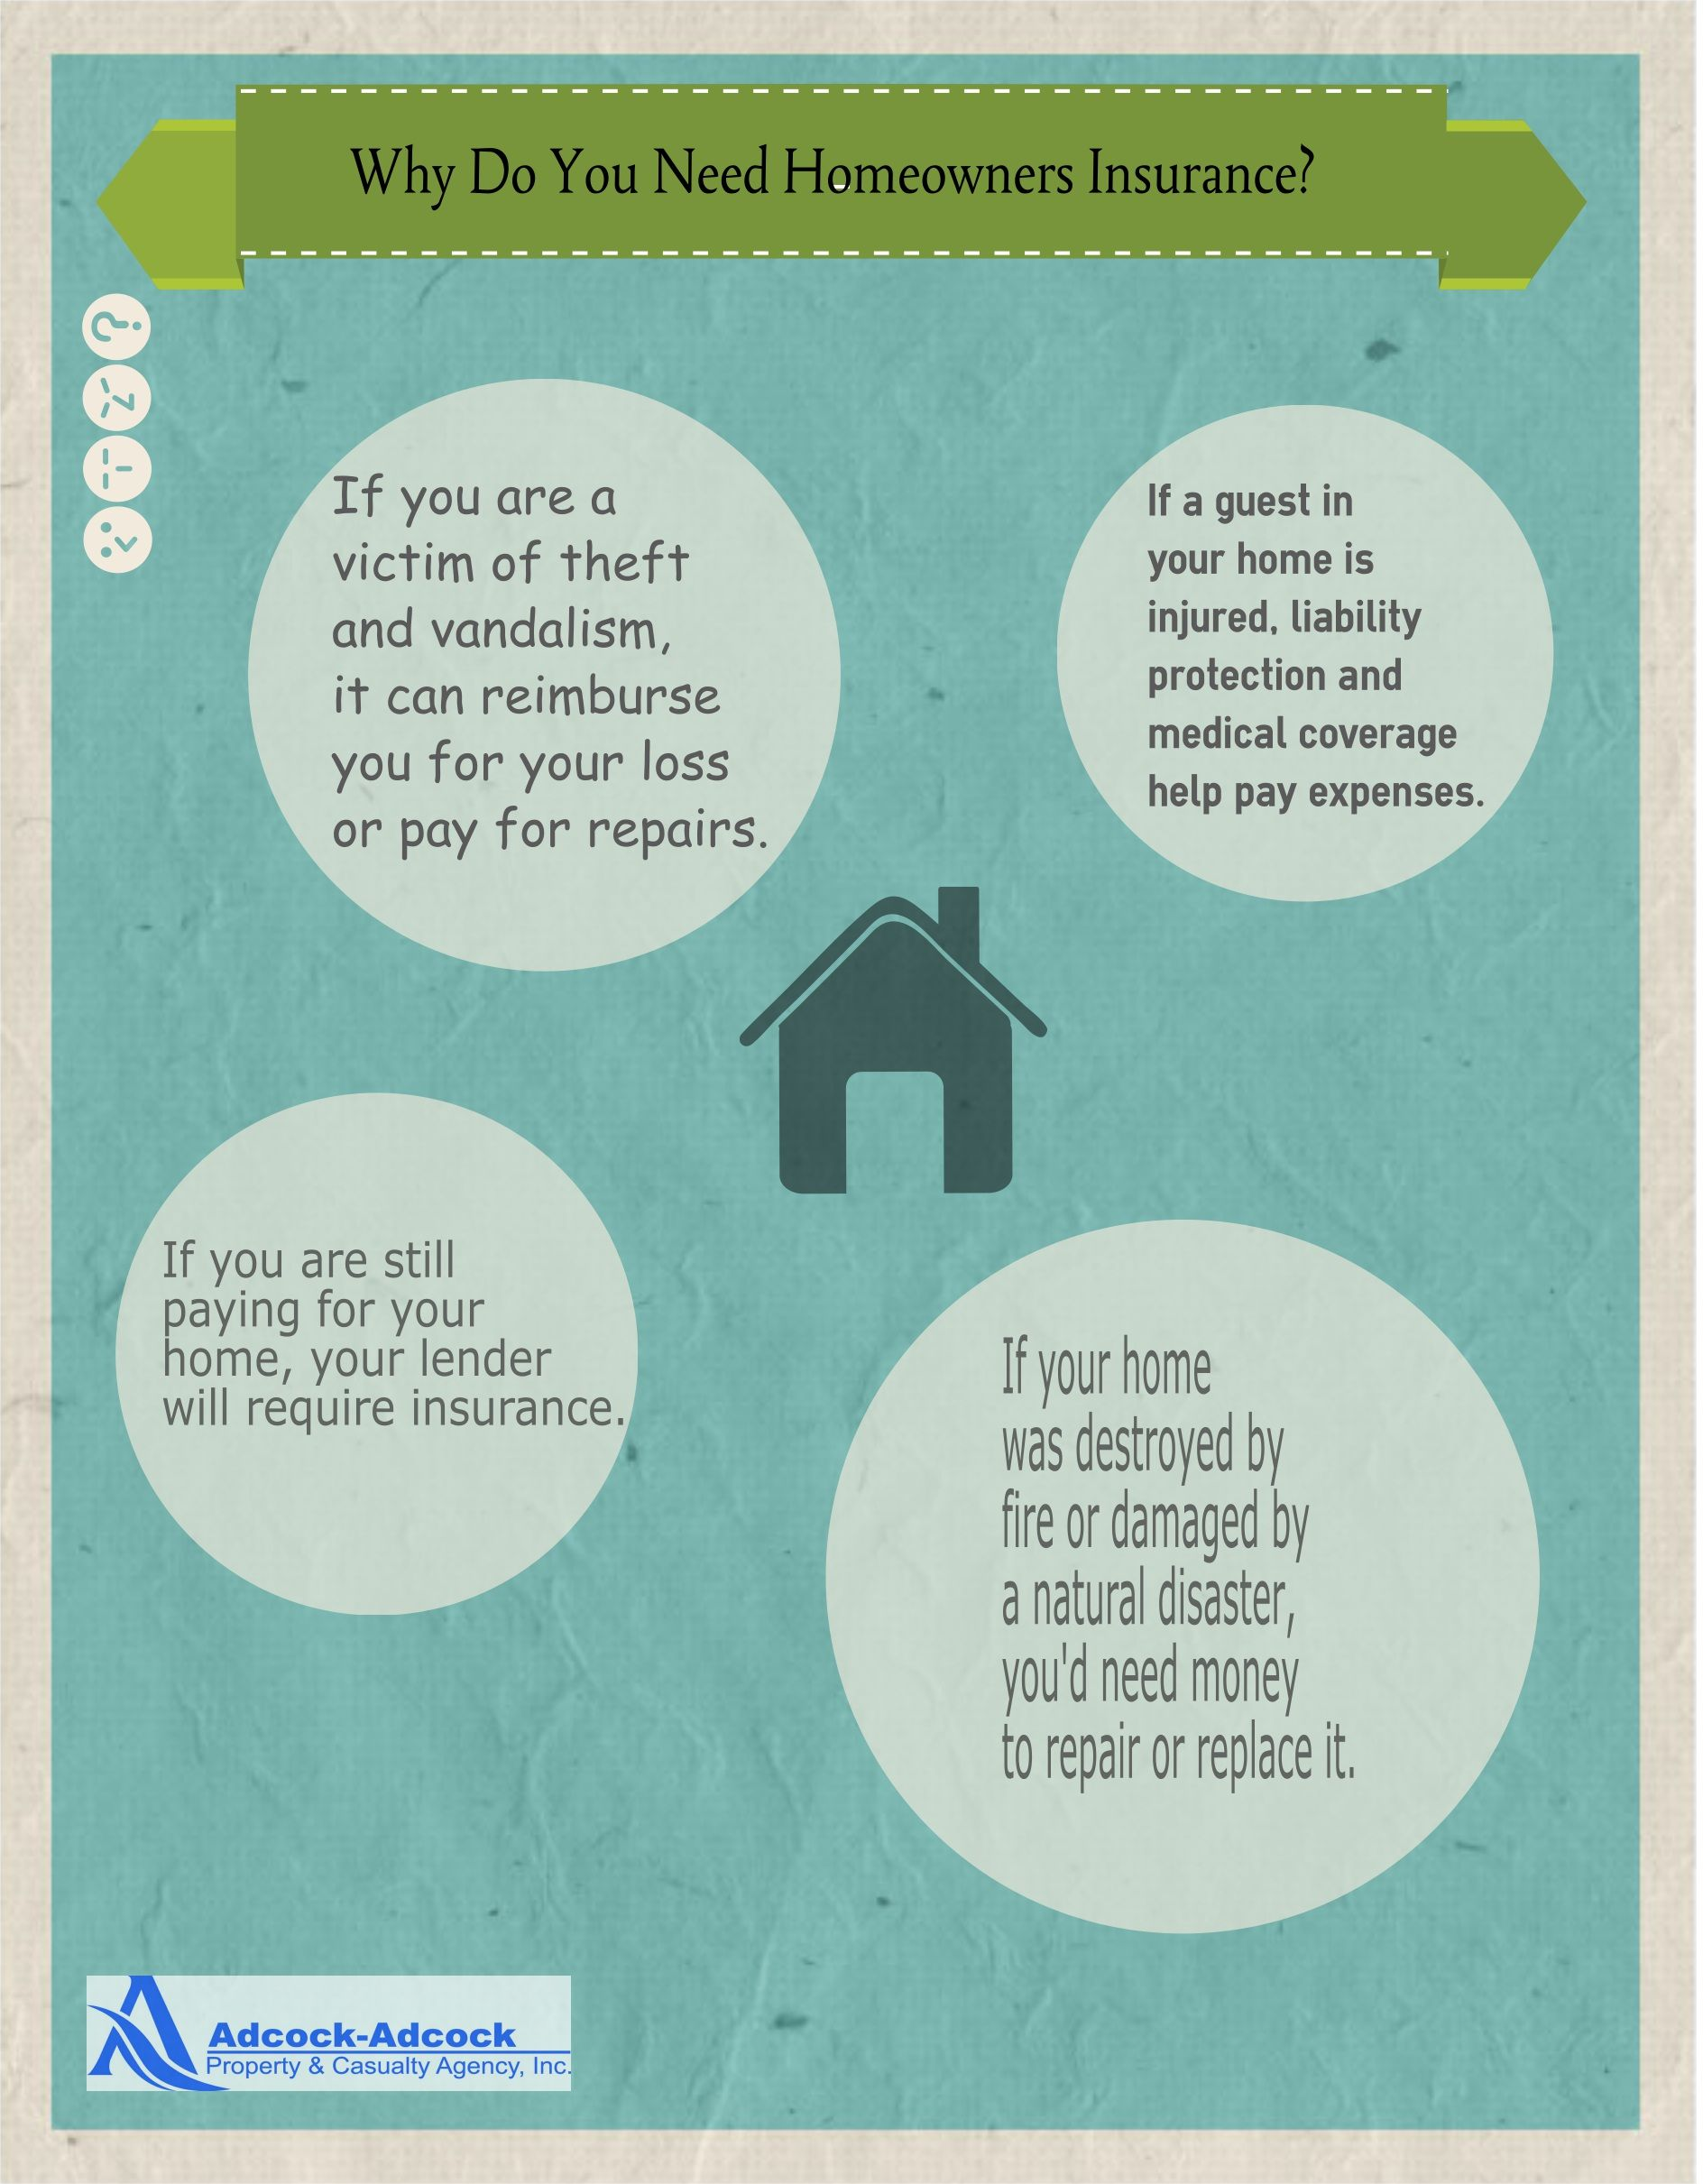 Reasons to have Homeowners Insurance Homeowners